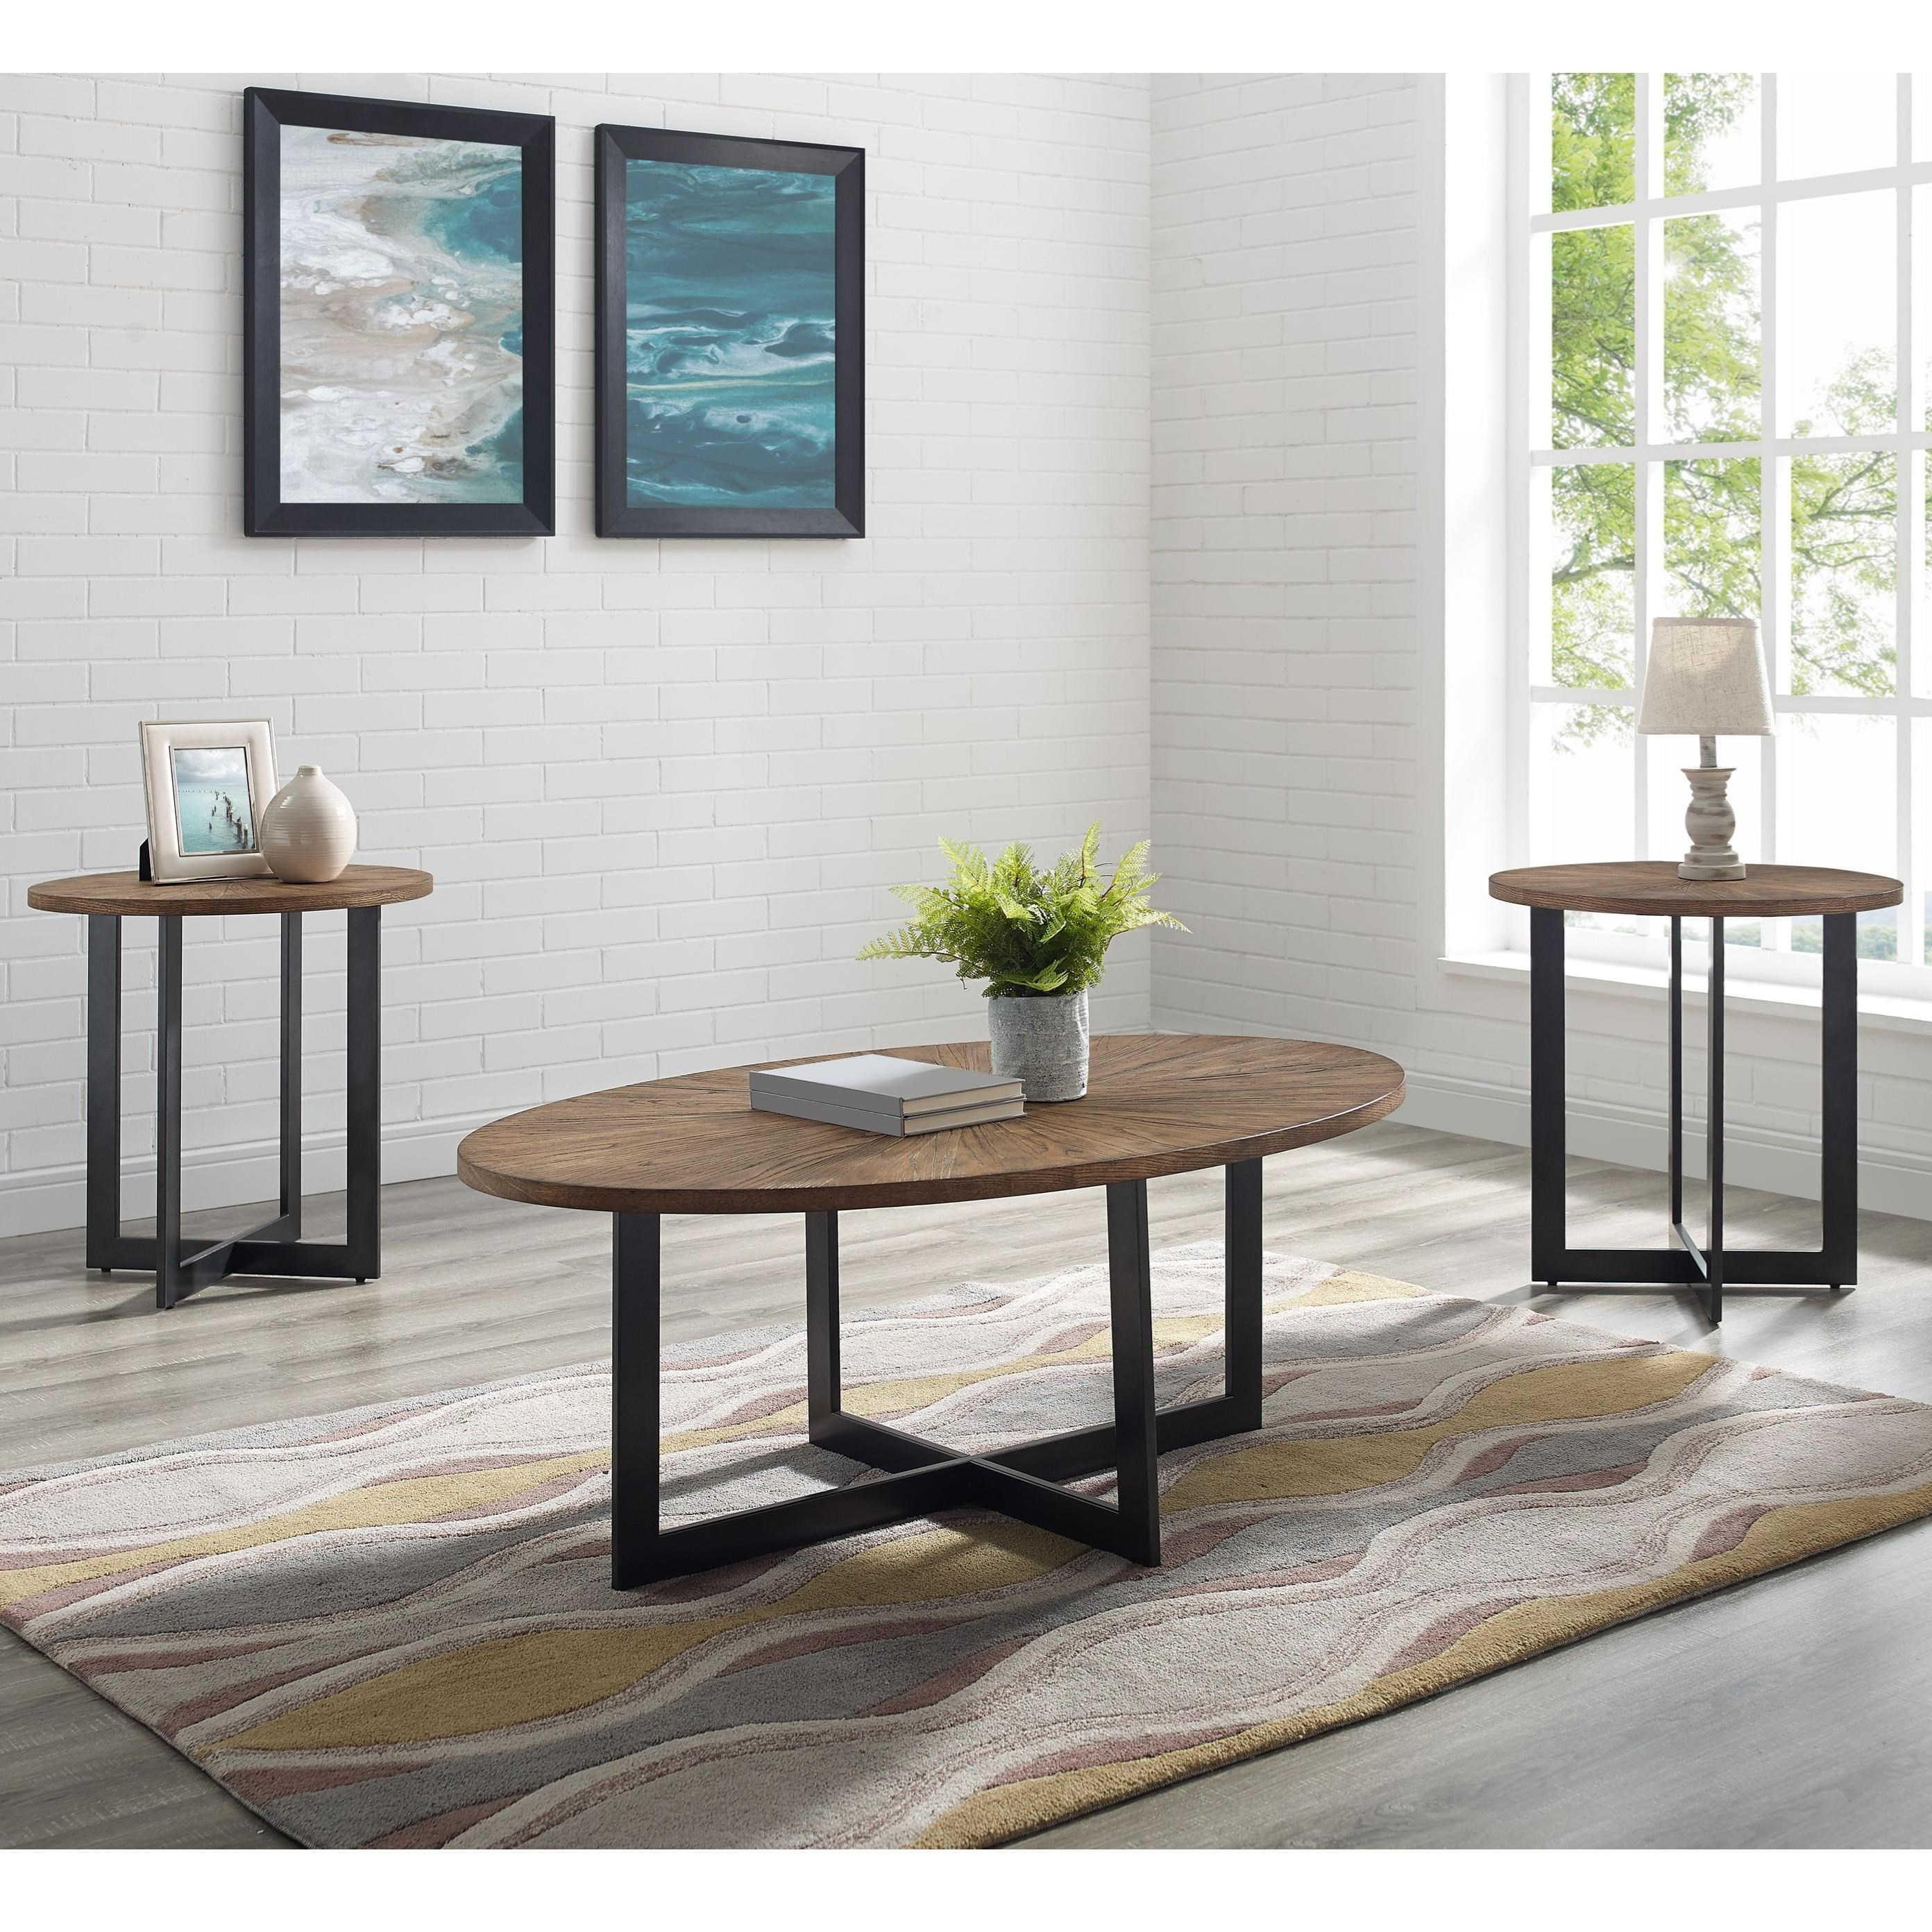 Colton Living Room Table 3 Pc Set by Steve Silver at Walker's Furniture